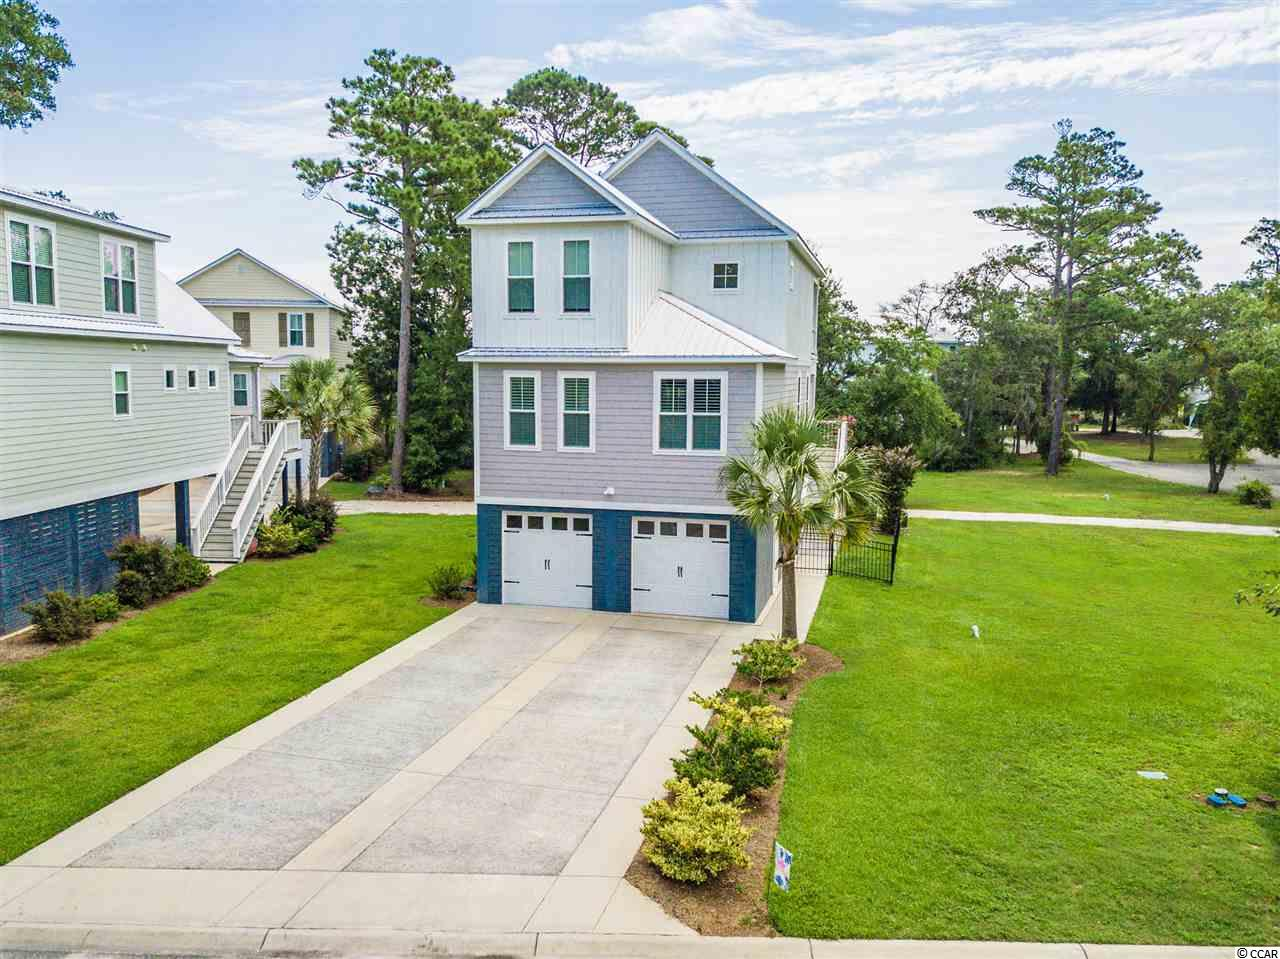 Beautiful new offering in marshfront community located between Pawleys Island and Litchfield Beach. This raised beach home offers thoughtfully planned construction with future elevator shaft, ground floor parking, additional recreation area, and a design featuring two suites and an additional guest room. Open great room, kitchen, dining combination around center island for gathering and entertaining. Pantry, powder room for guest, and bedroom with en-suite bath also available on main floor. Second floor offers additional bedroom with its own bath and private balcony, guest room, hall bath and laundry. Additional features include a small workshop in garage, irrigation, and fencing. This one shows like a model be sure to see it soon!